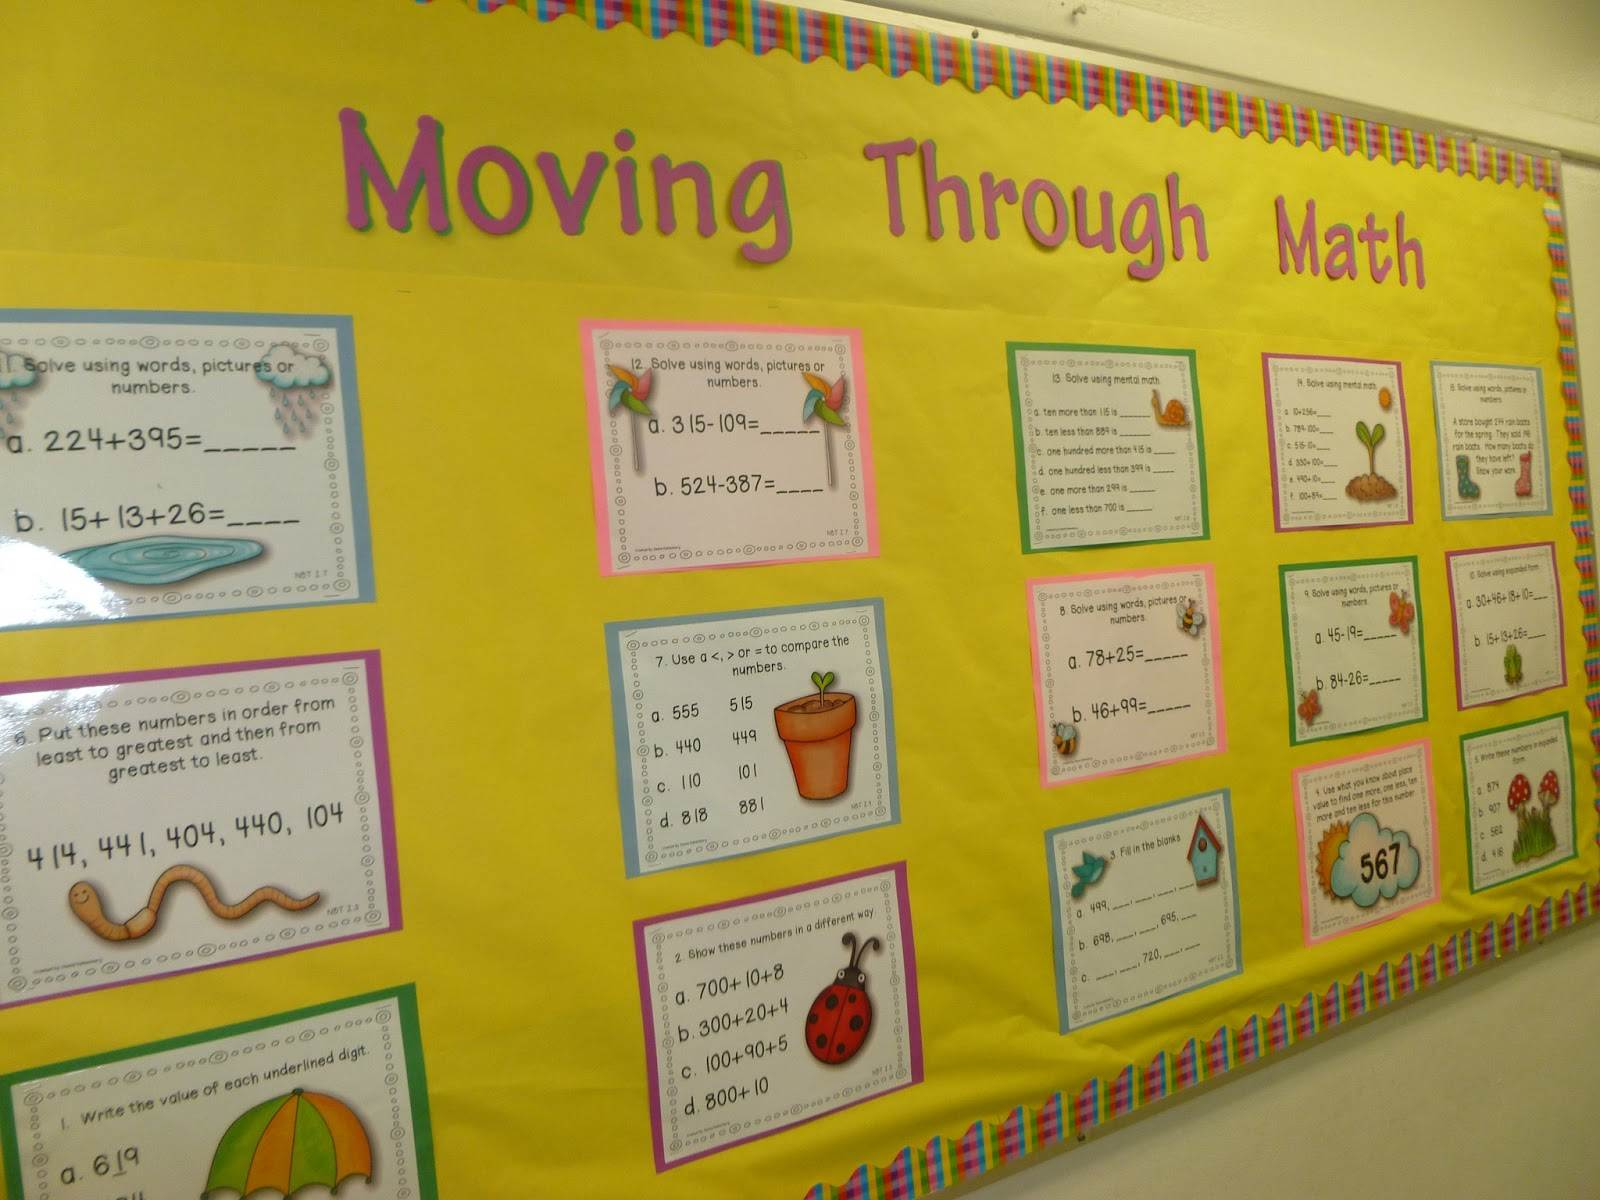 Moving through Math Bump it up Wall